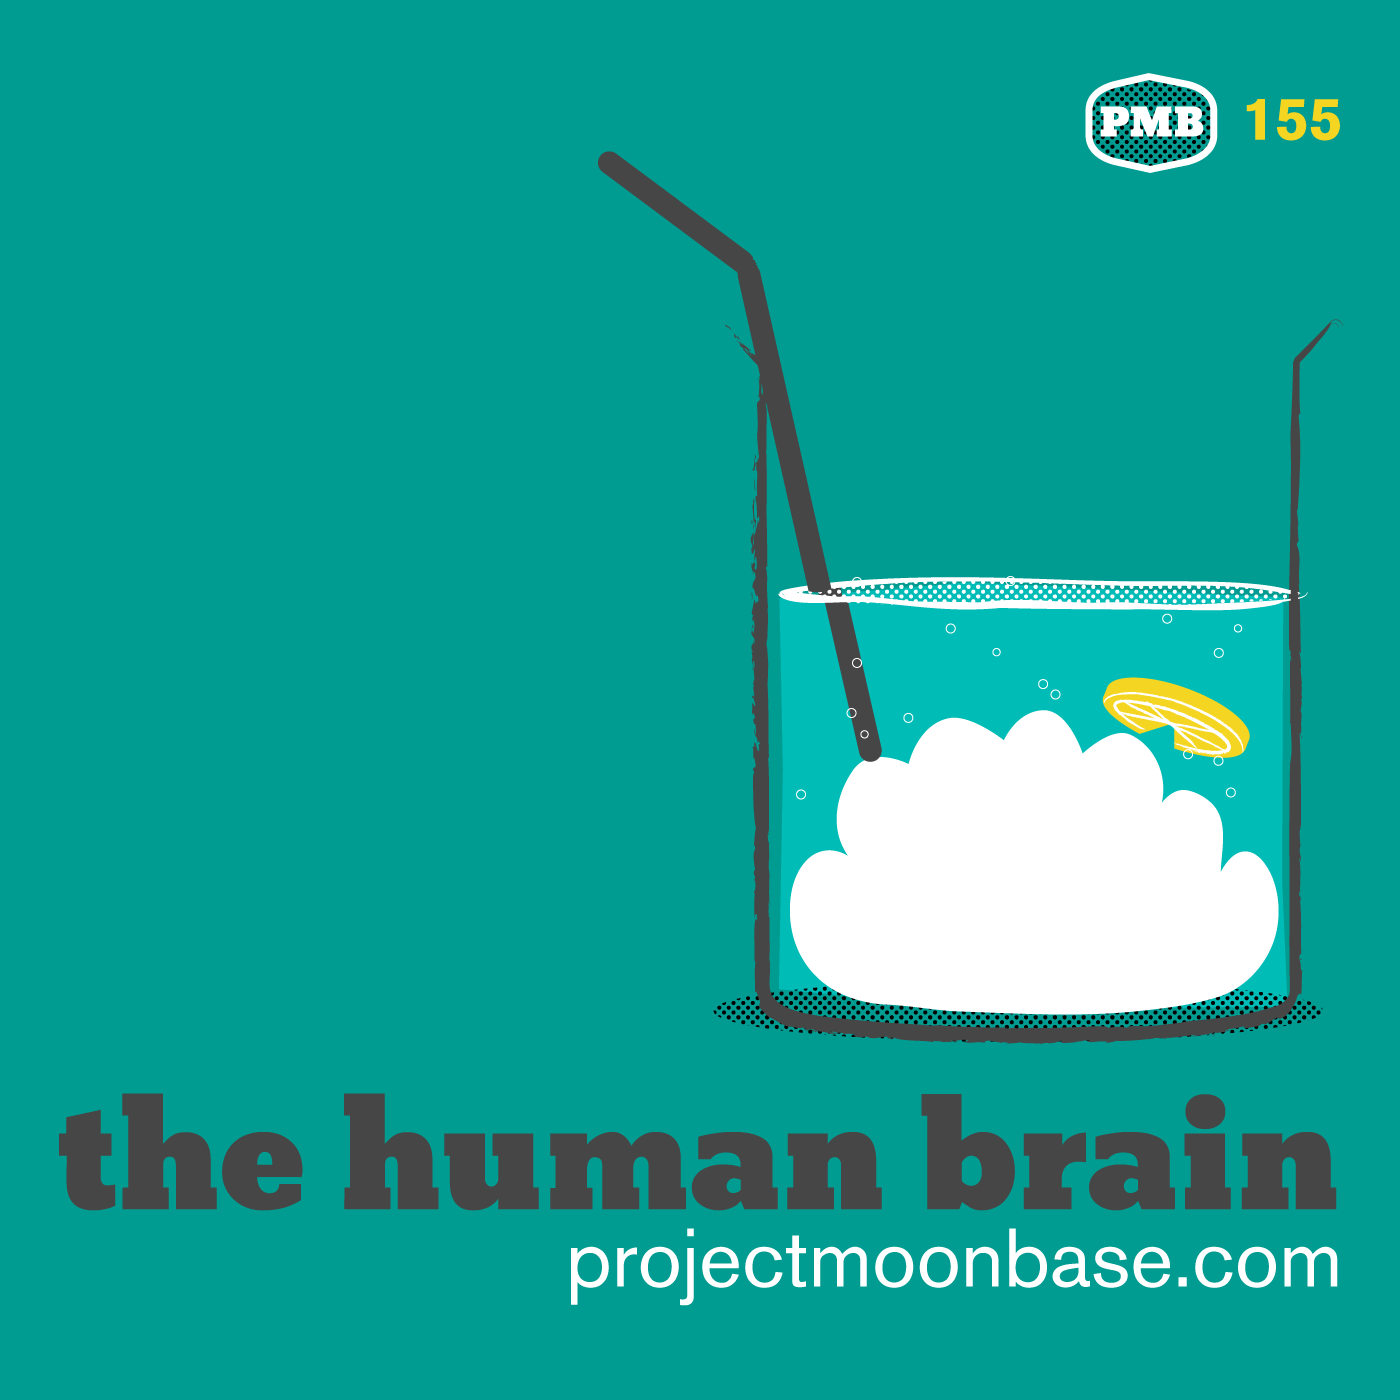 PMB155 The Human Brain